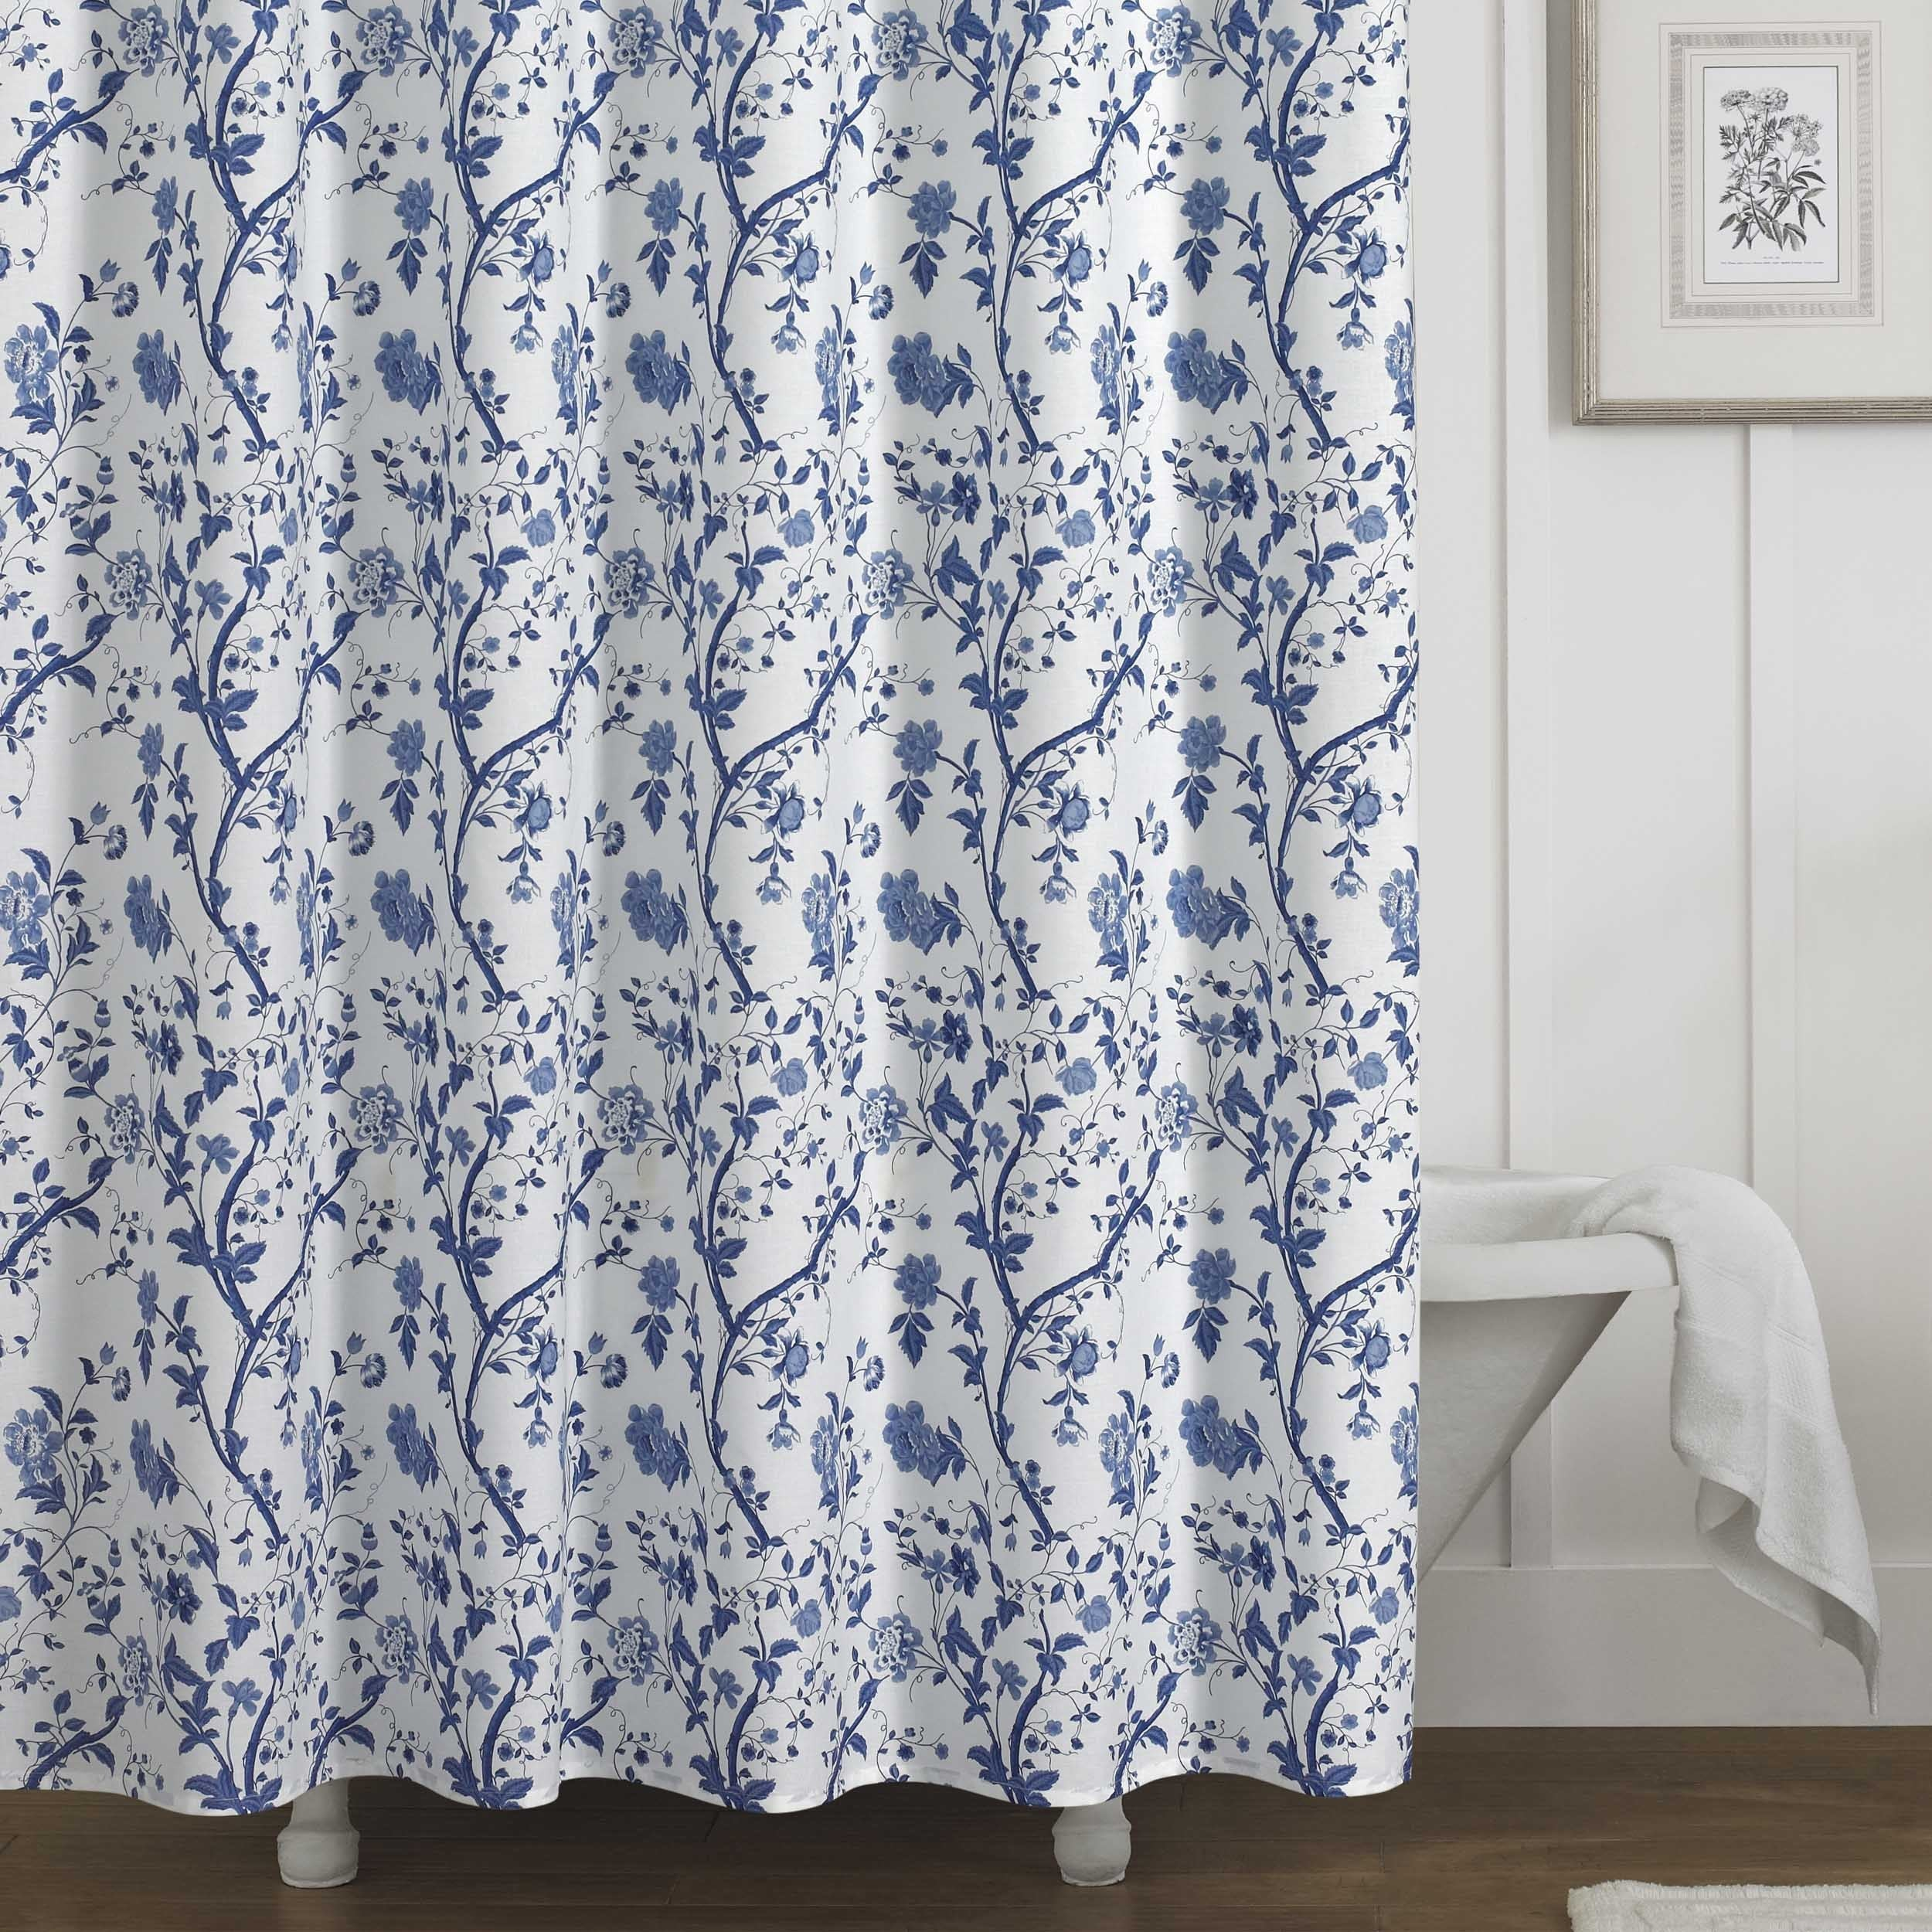 Shop Laura Ashley Charlotte Blue And White Floral Cotton Shower Curtain 72 X